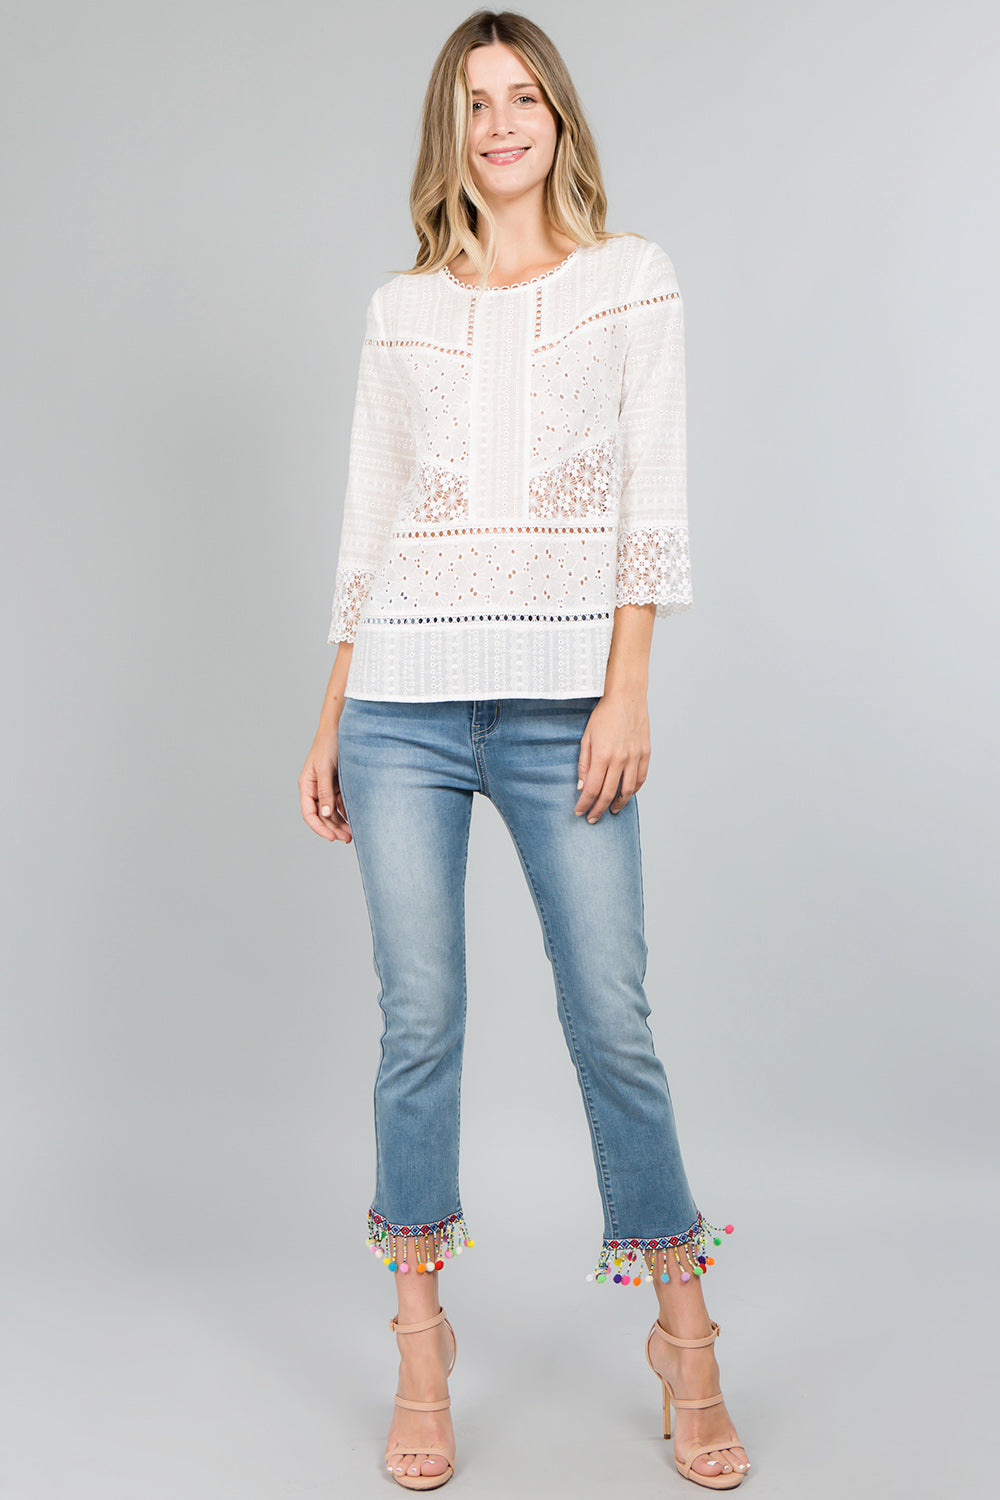 T2370 Eyelet and Lace Patch Top